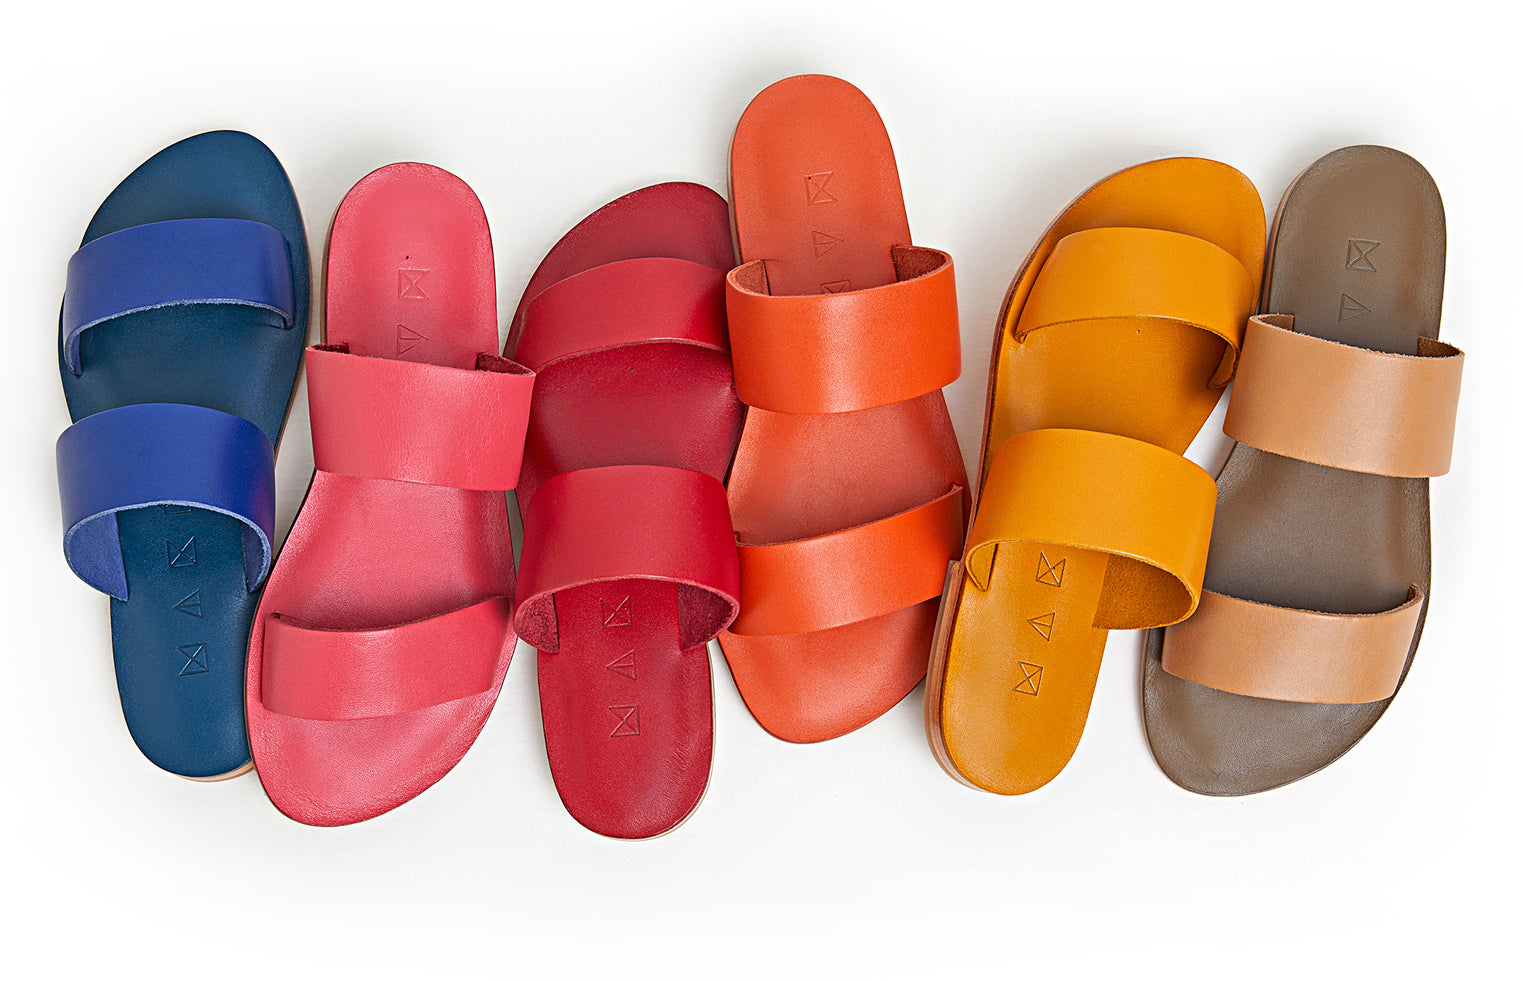 Many colours of the Maki Sandals displayed side by side.